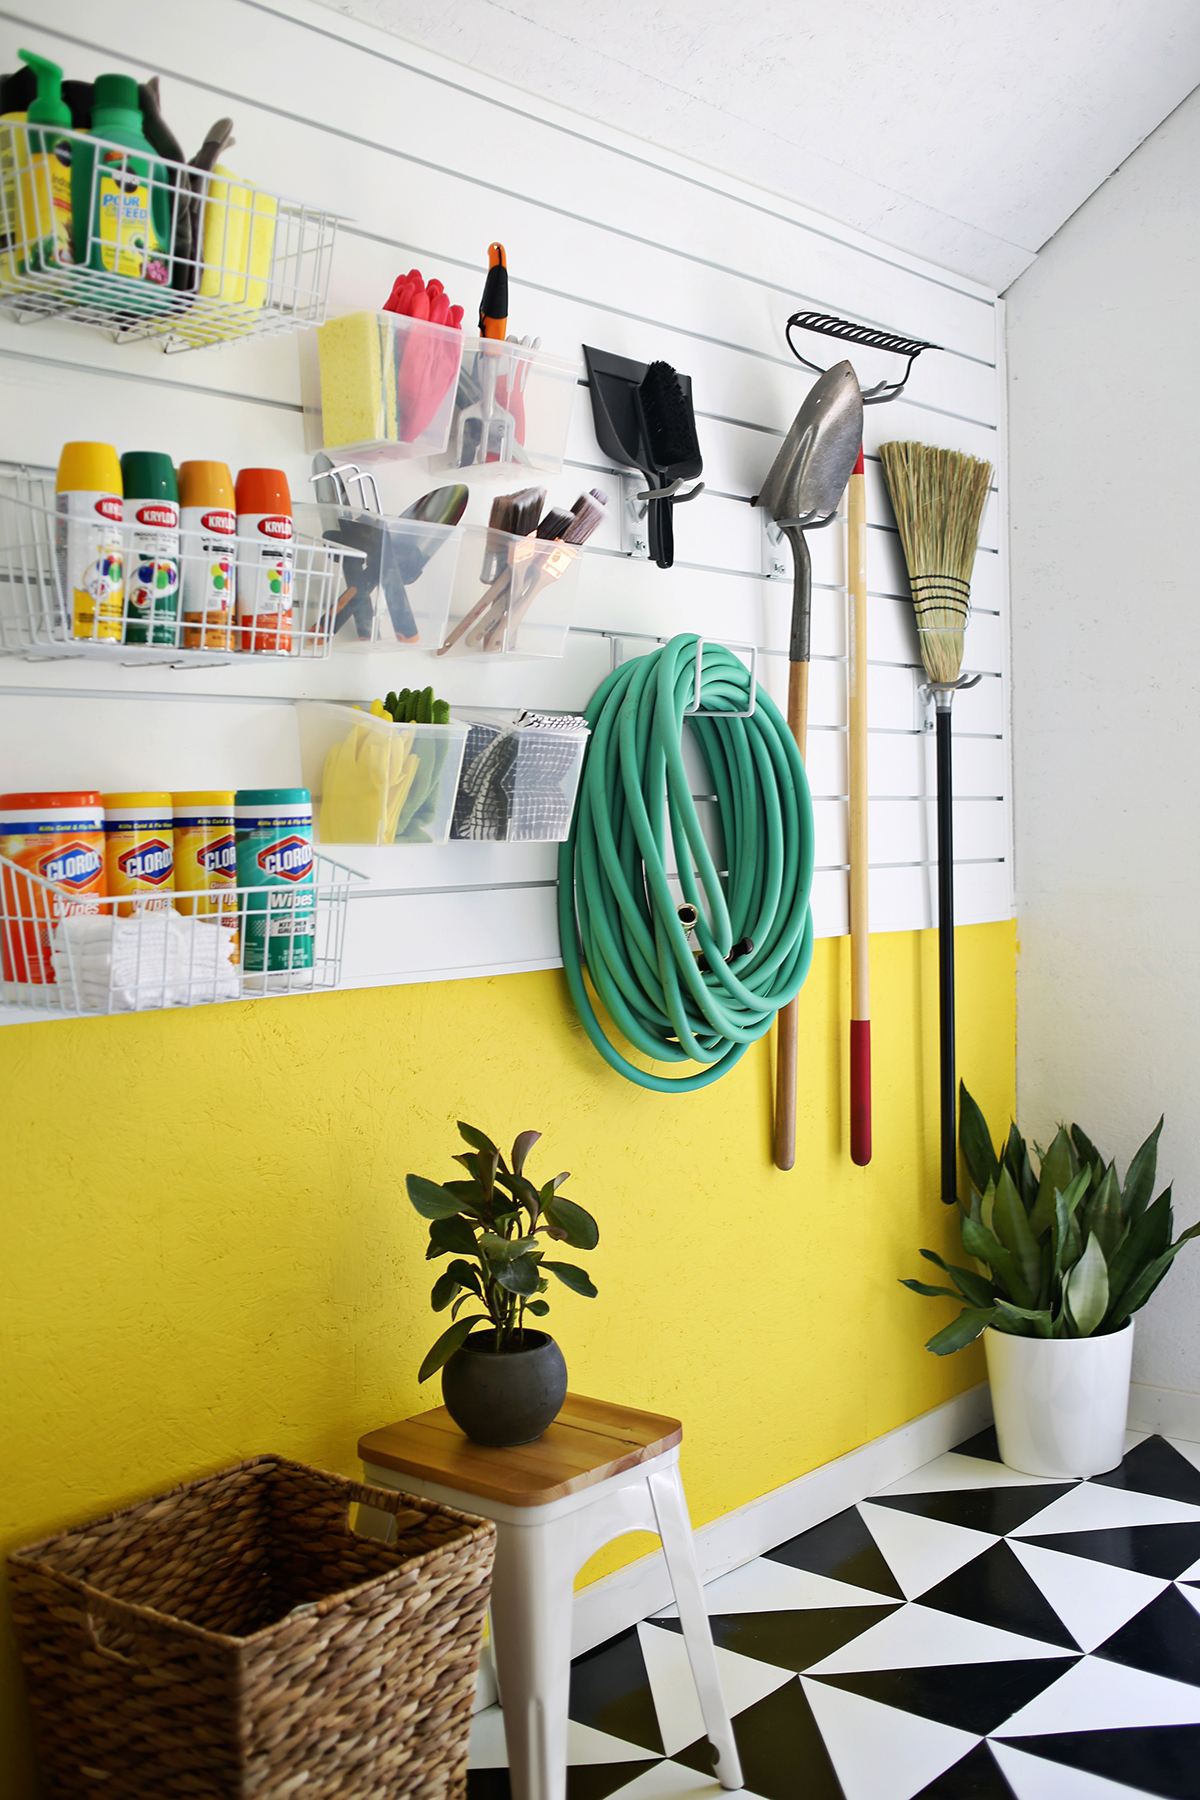 25 Garage Storage Ideas That Will Make Your Life So Much Easier